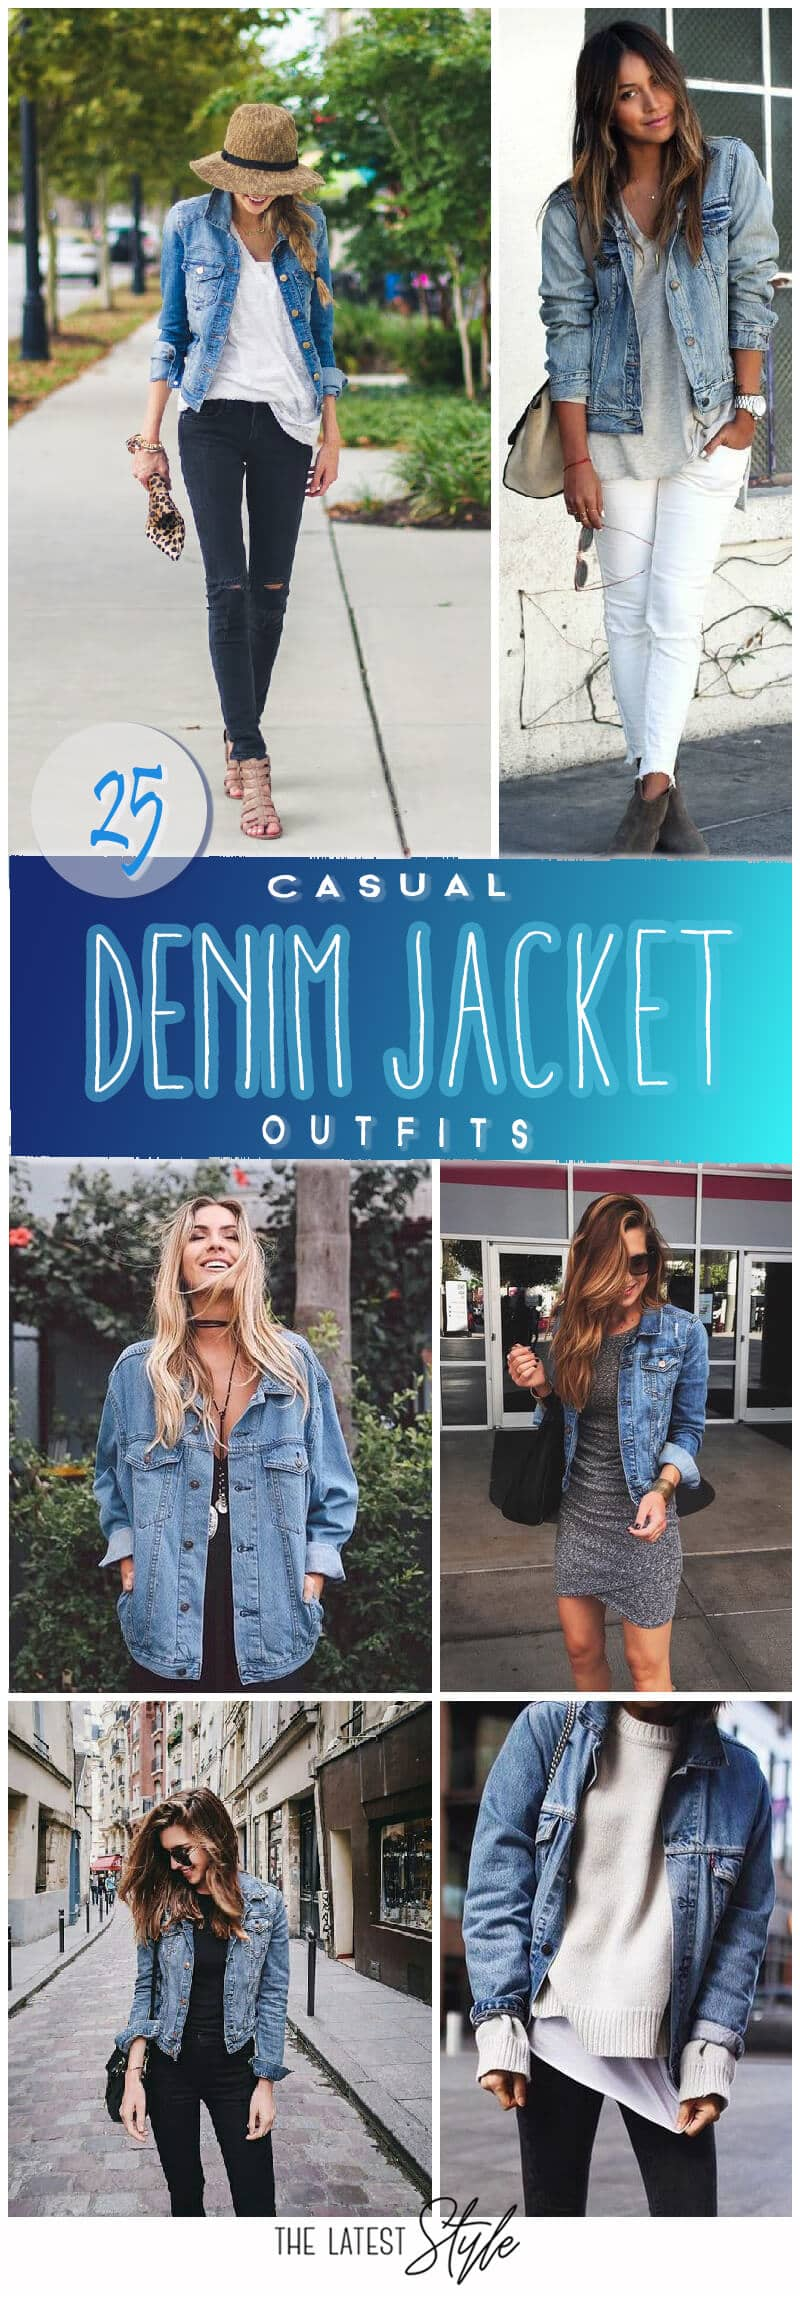 25 Casual Denim Jacket Outfits